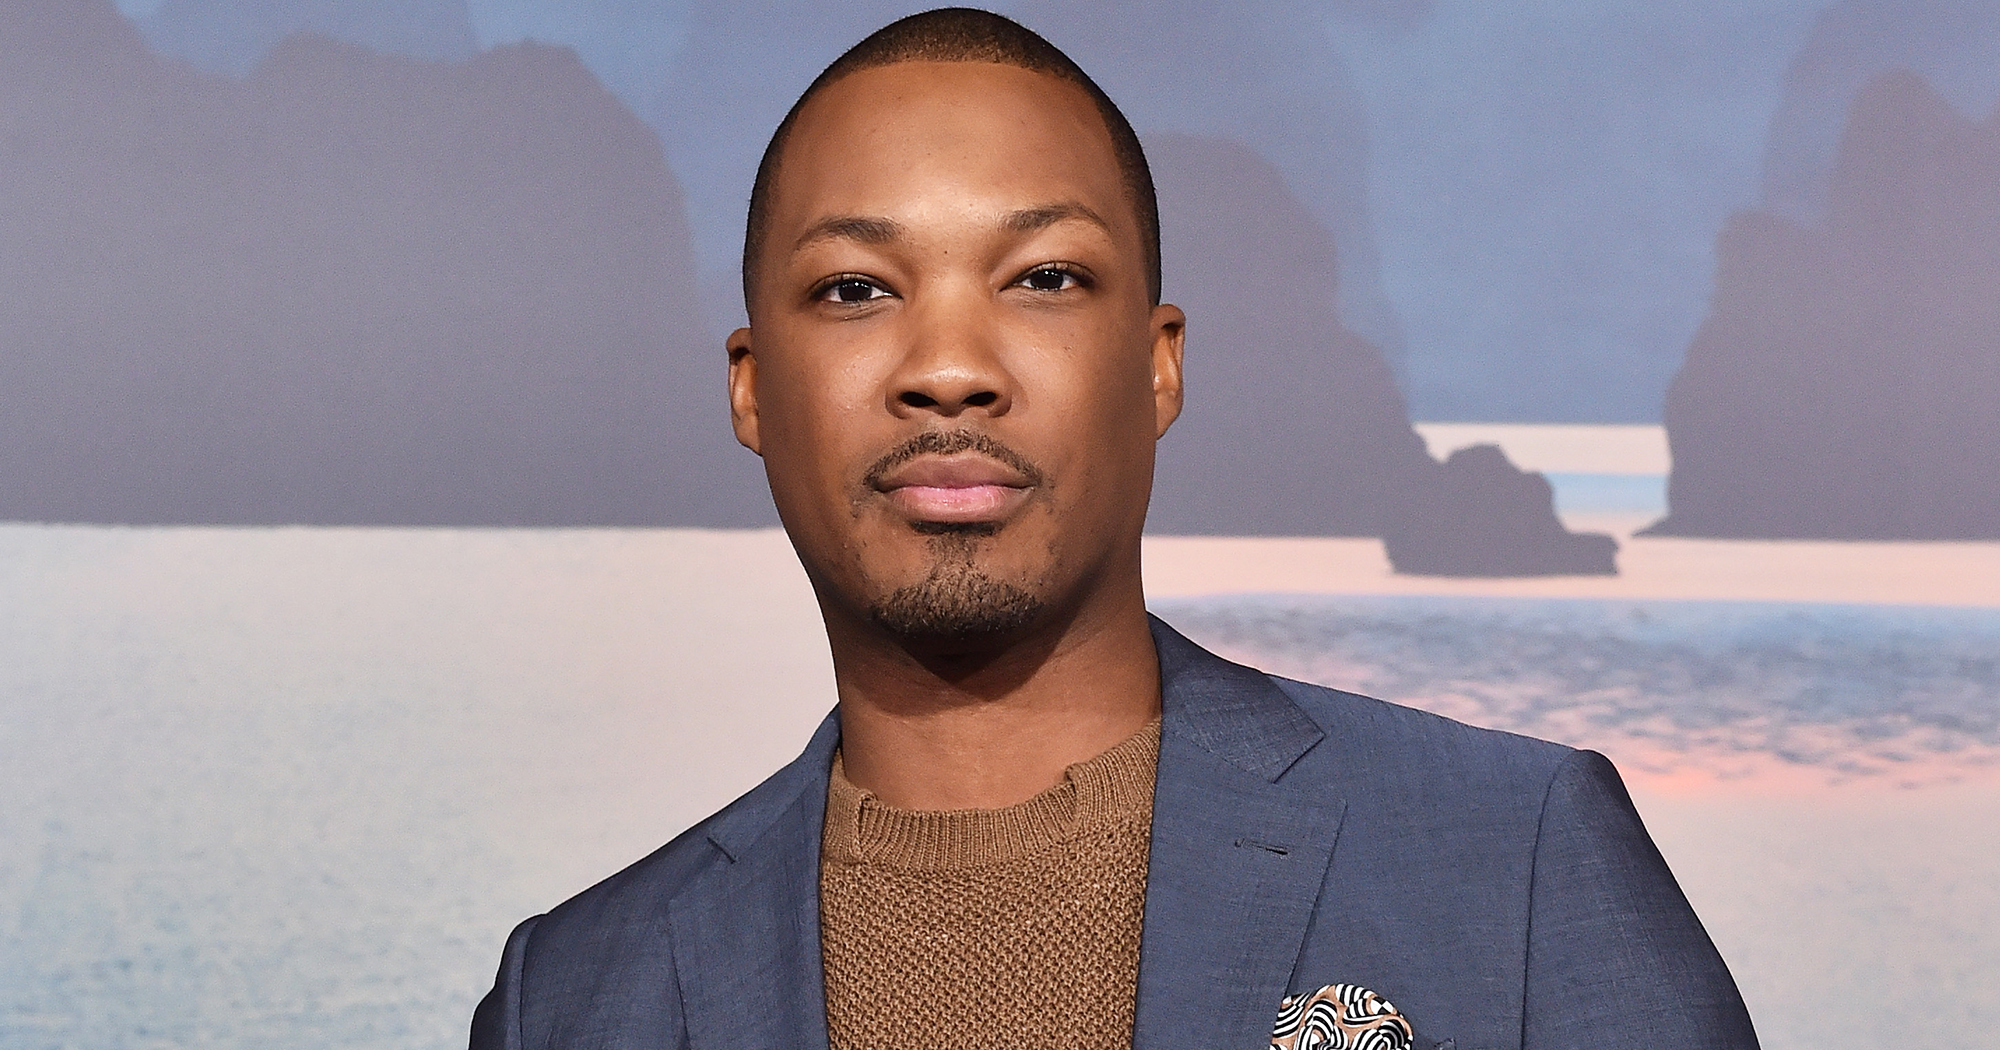 Corey Hawkins Phone number, Email Id, Fanmail, Instagram, Tiktok, and Contact Details